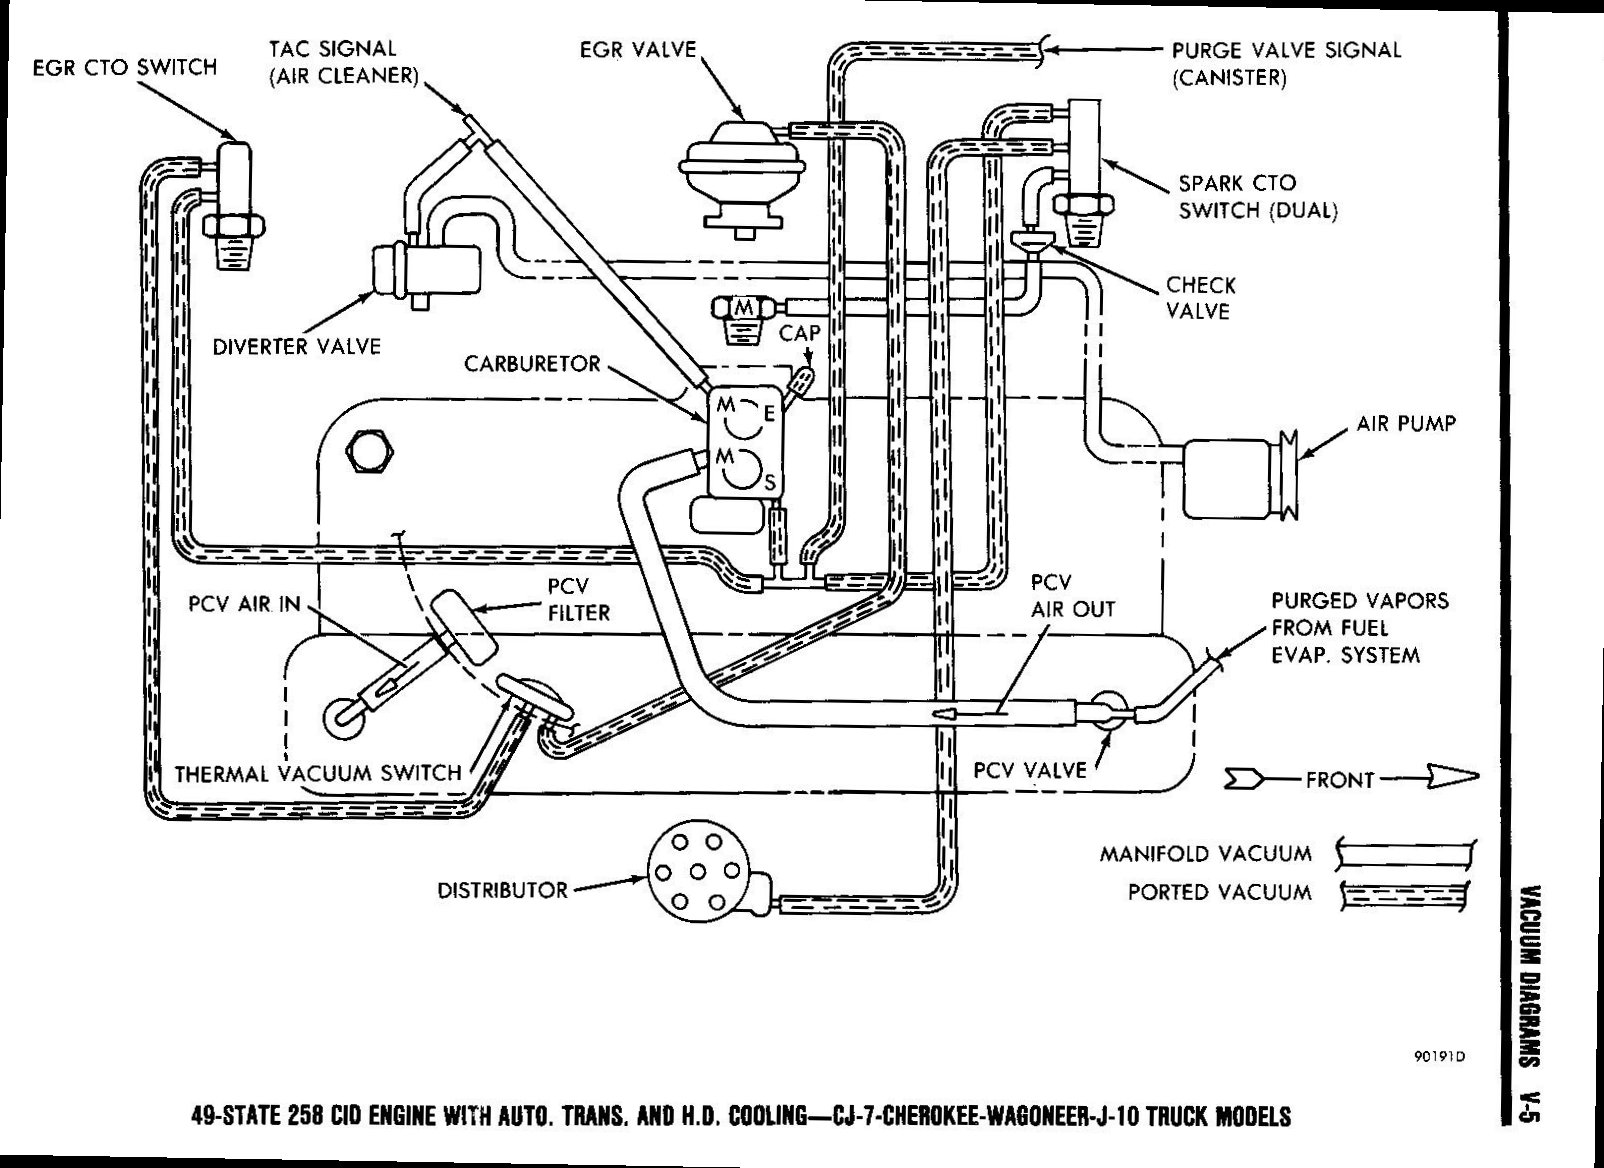 79 FSJ 6cyl_Vacuum 2 cj5 258 vacuum diagram! jeepforum com cj7 starter solenoid wiring diagram at bayanpartner.co